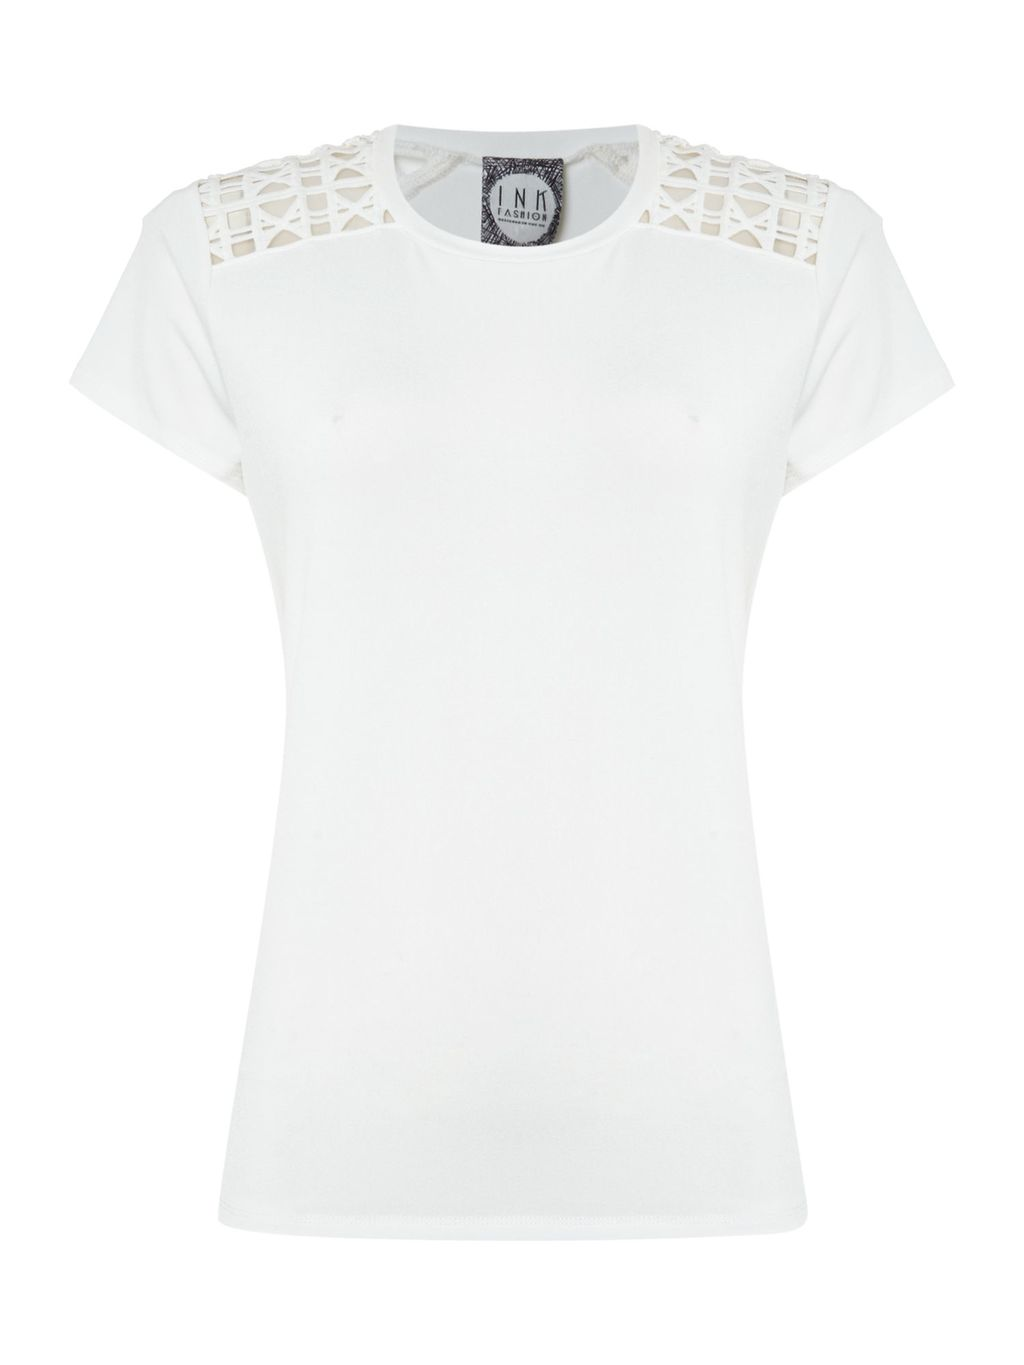 Aggie Cut Out Shoulder Top, White - pattern: plain; predominant colour: white; occasions: casual; length: standard; style: top; fibres: polyester/polyamide - stretch; fit: body skimming; neckline: crew; sleeve length: short sleeve; sleeve style: standard; pattern type: fabric; texture group: jersey - stretchy/drapey; wardrobe: basic; season: a/w 2016